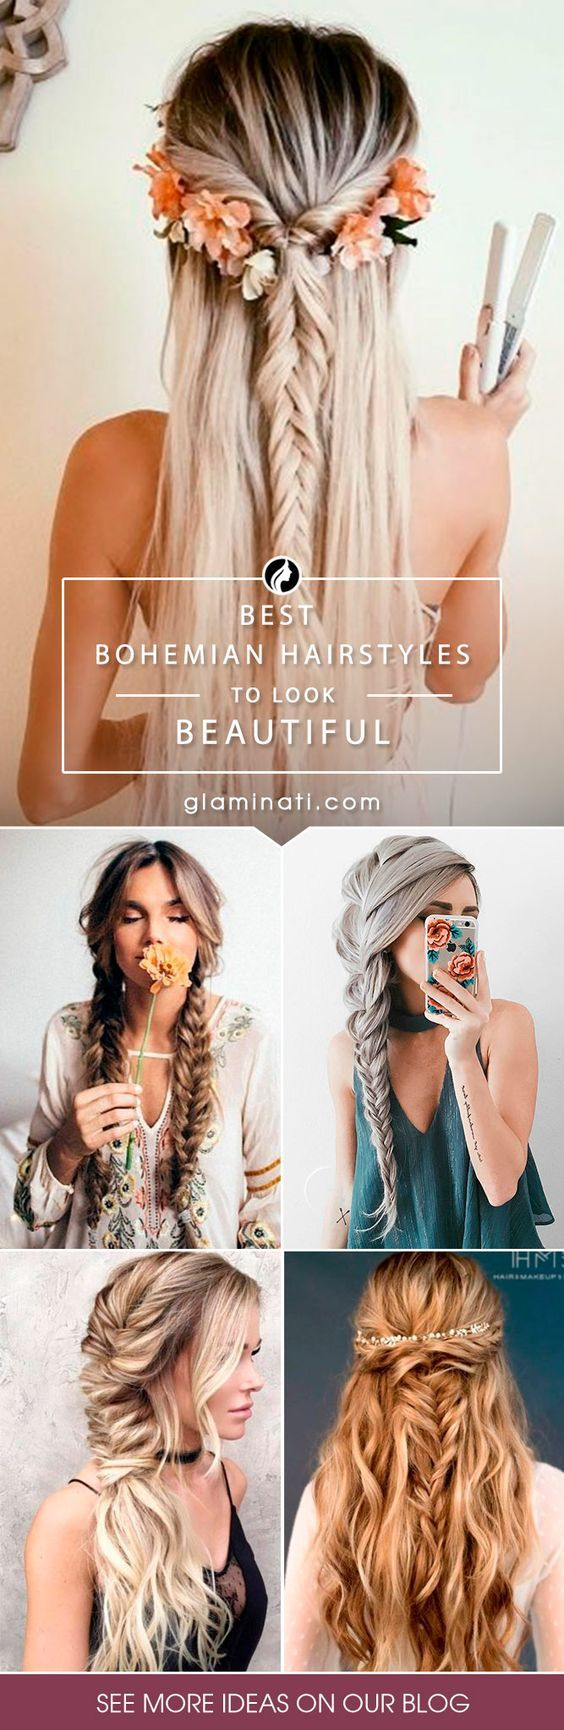 60 Best Bohemian Hairstyles That Turn Heads Bohemian Hairstyles Hair Styles Boho Hairstyles